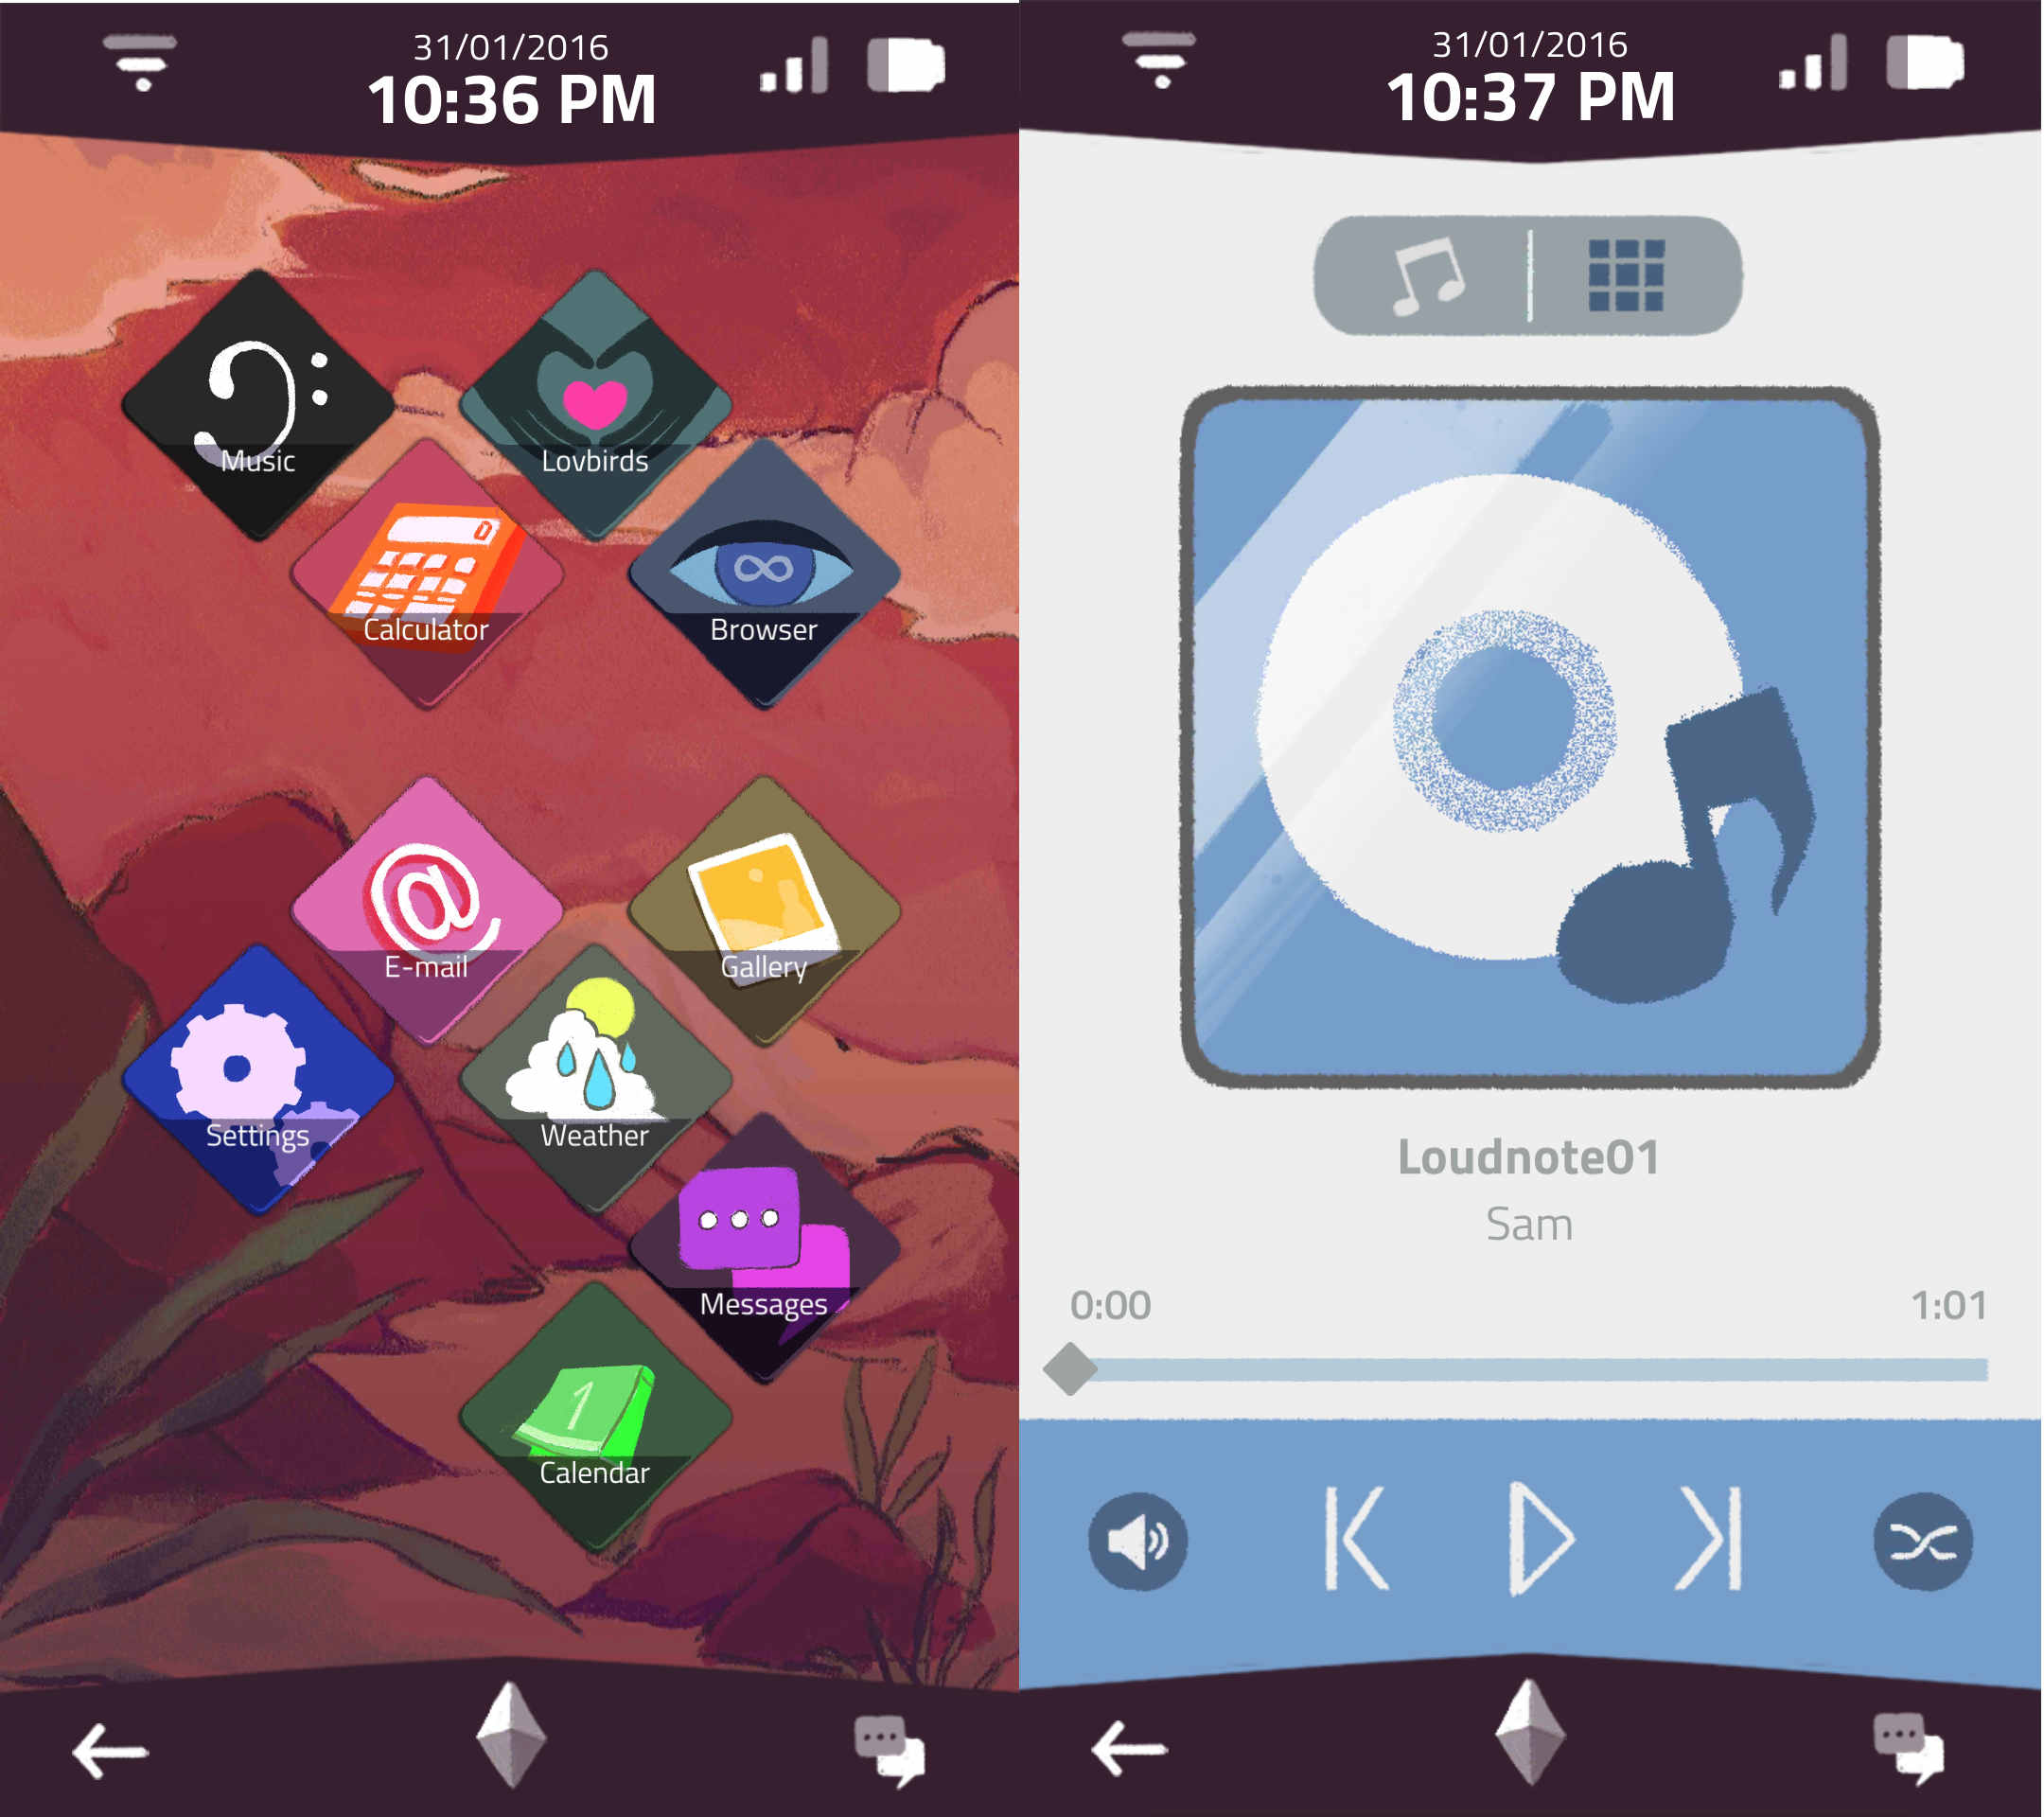 An image of the home page and music player